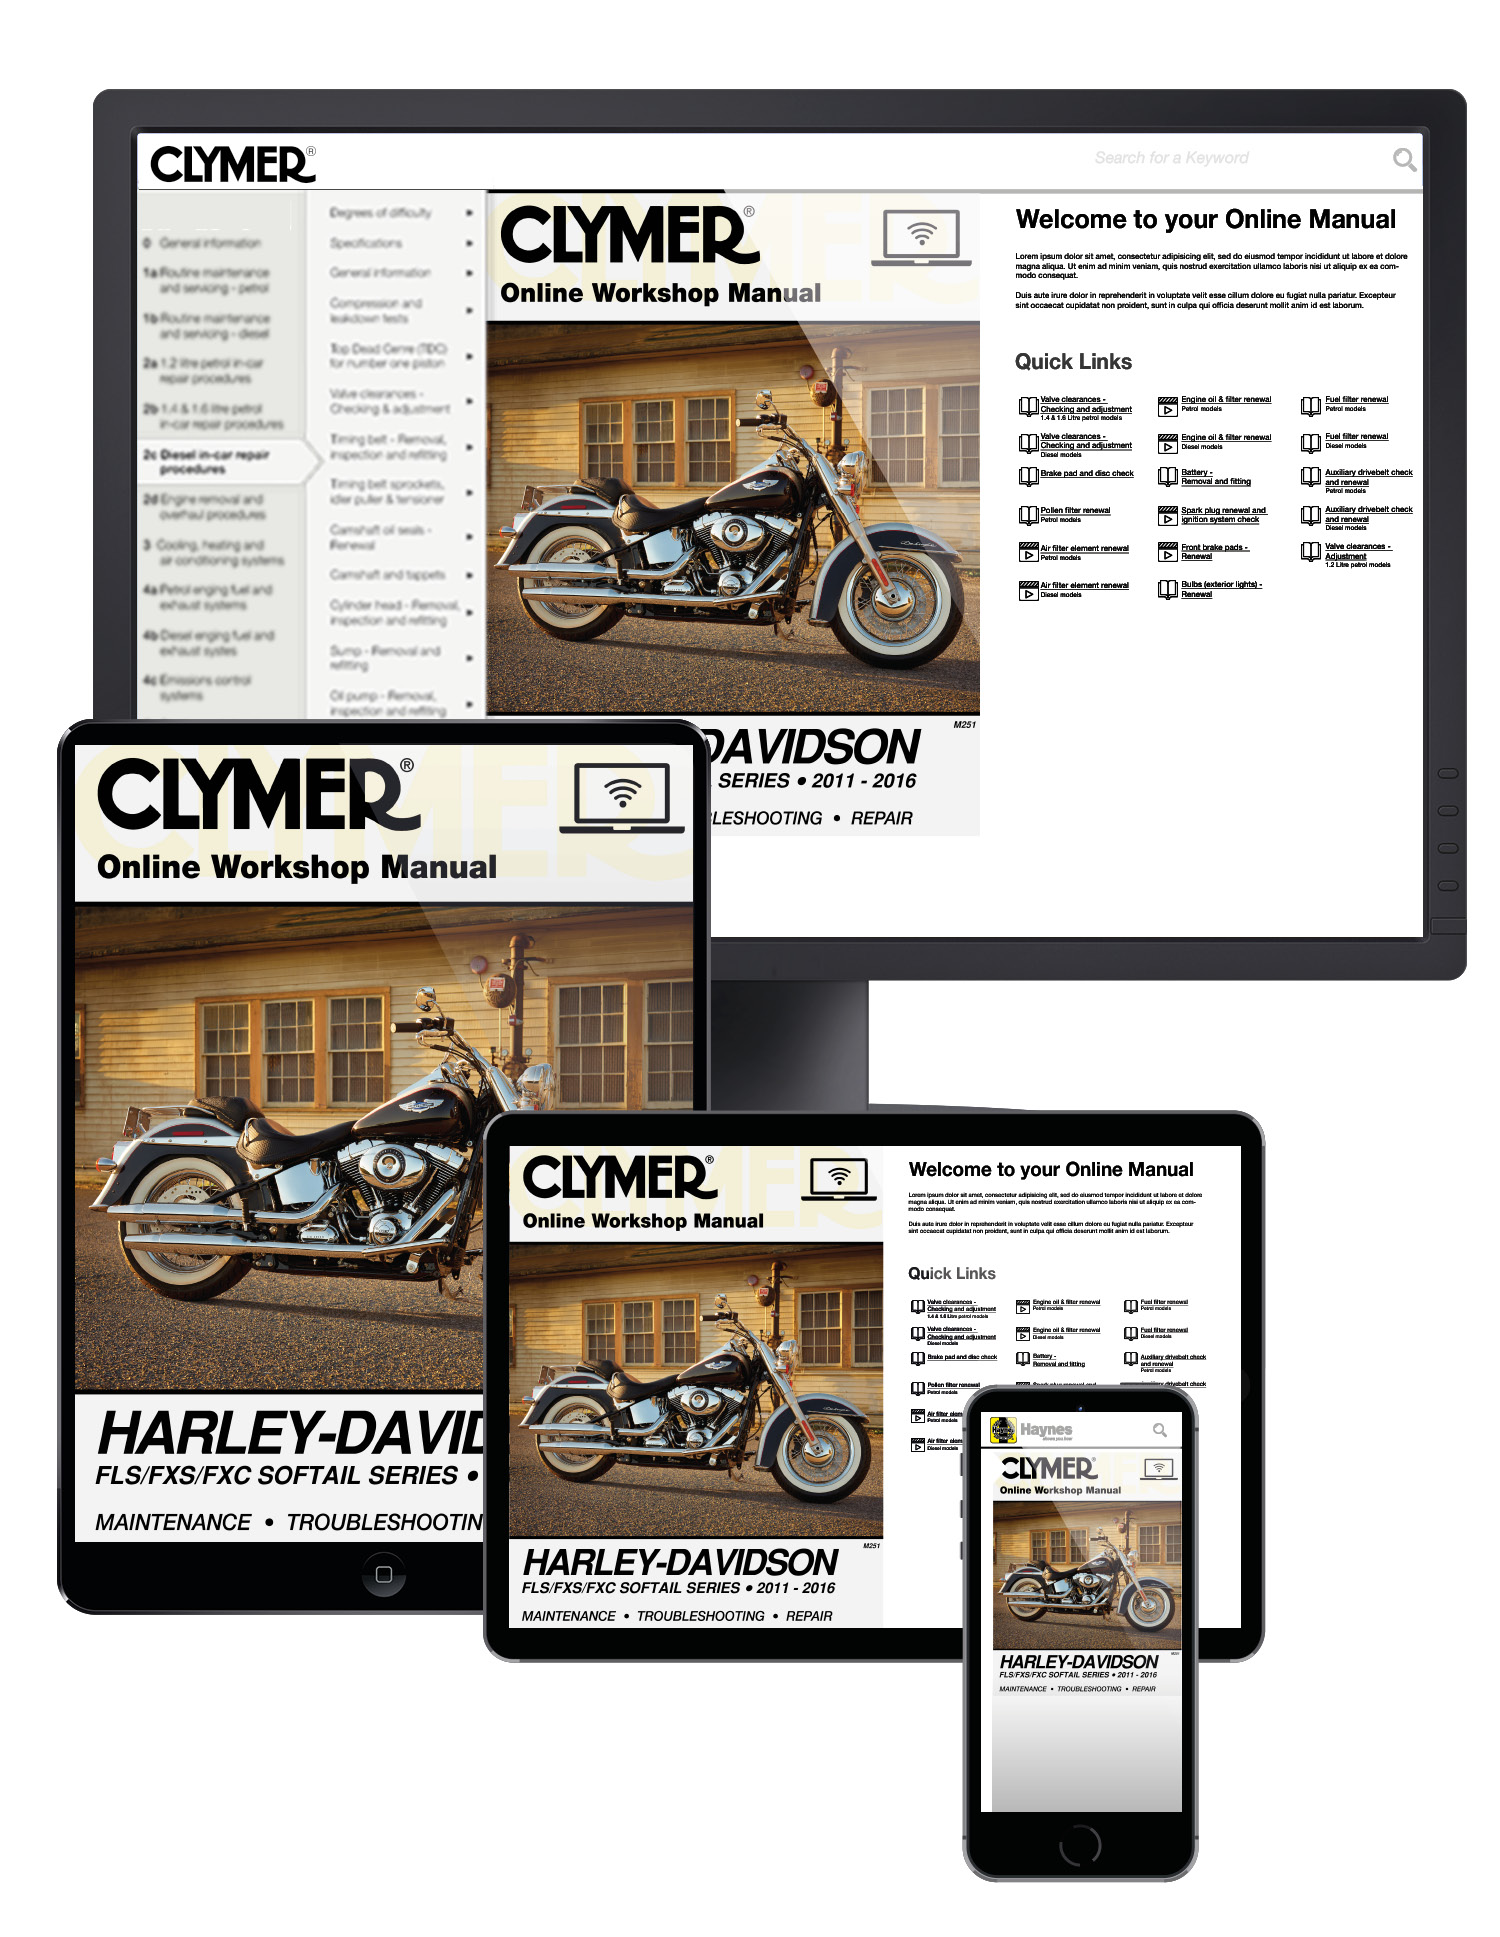 Harley-Davidson FLS/FXS/FXC Softail Series Motorcycle (2011-2016) Service Repair Manual Online Manual